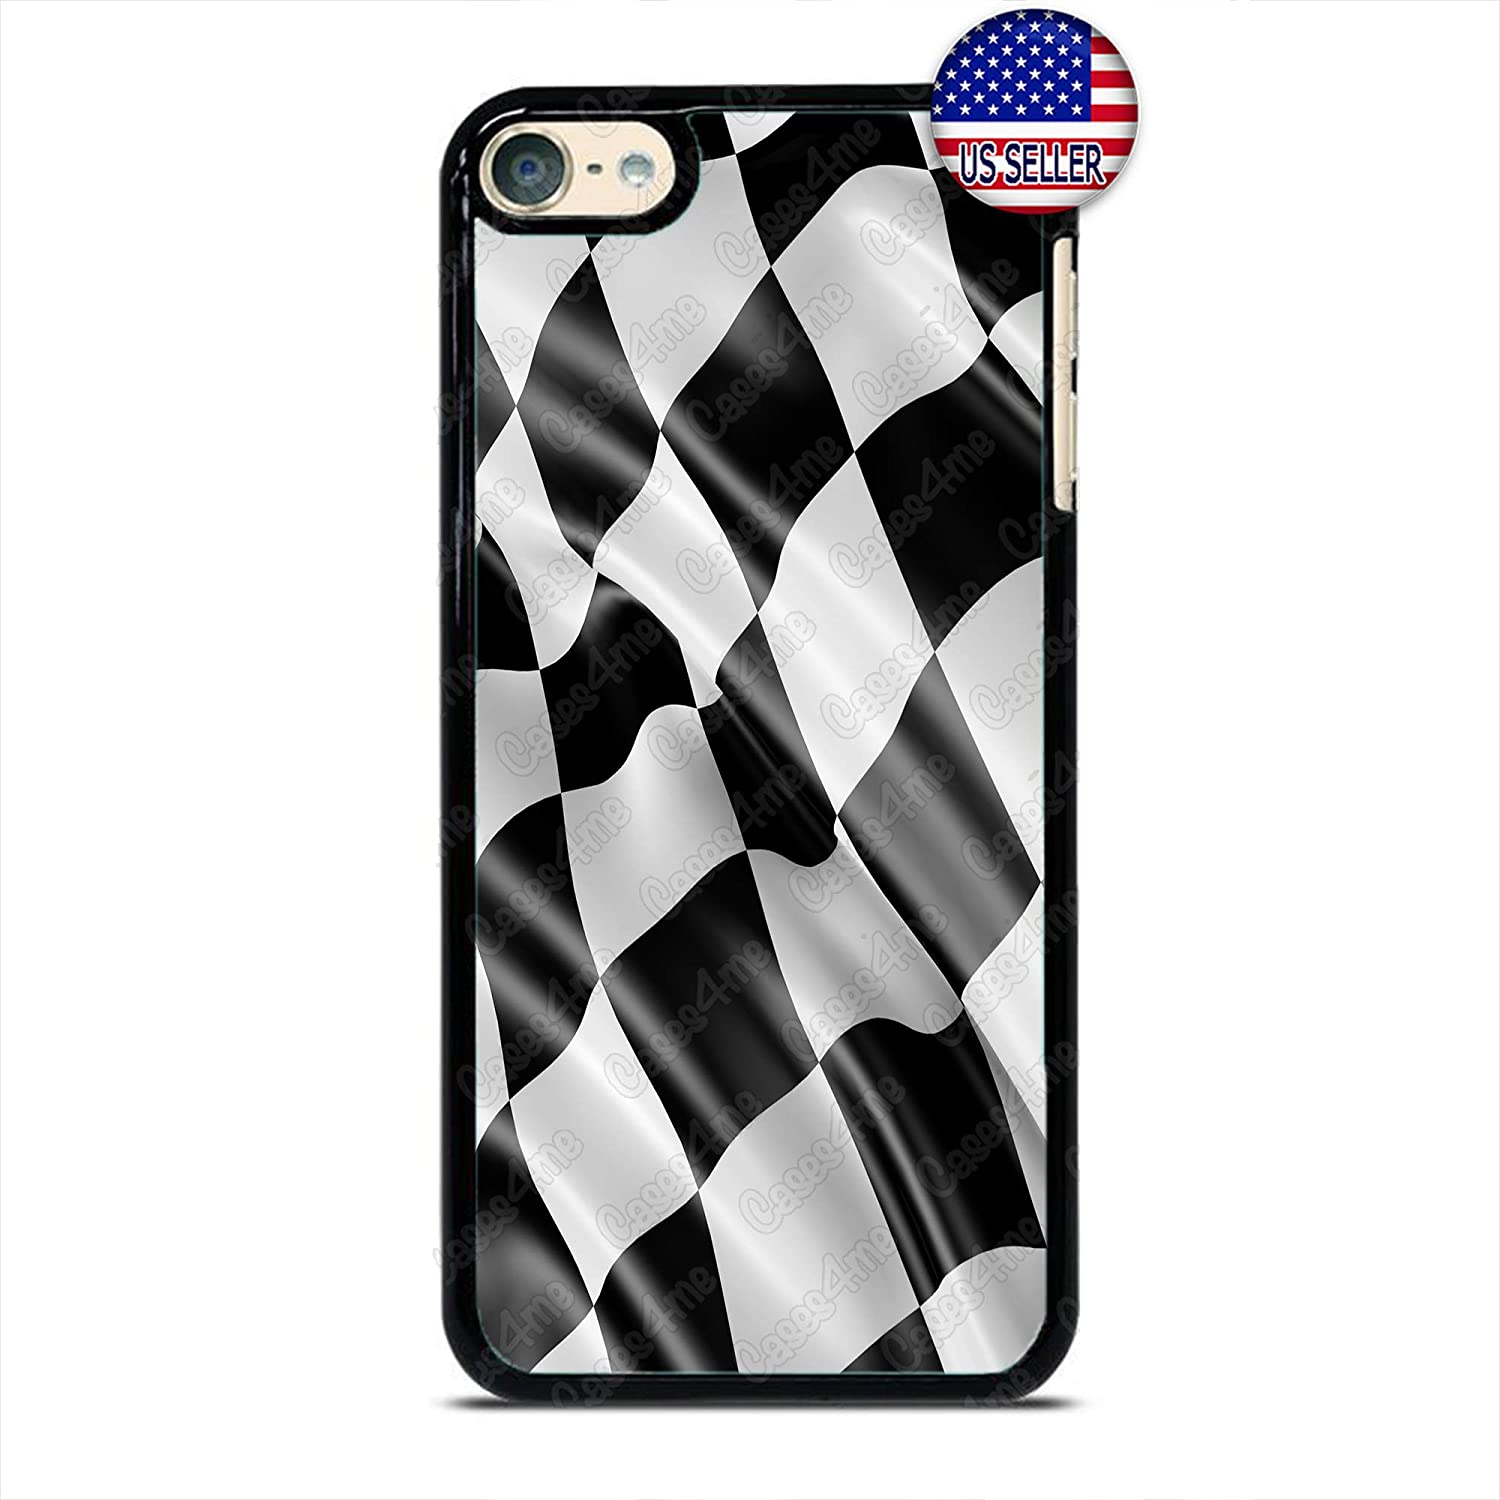 Checkerd Phone Case Formula Race Car Flag Slim Shockproof PC Custom Case Cover for iPod Touch 7 6 5 4